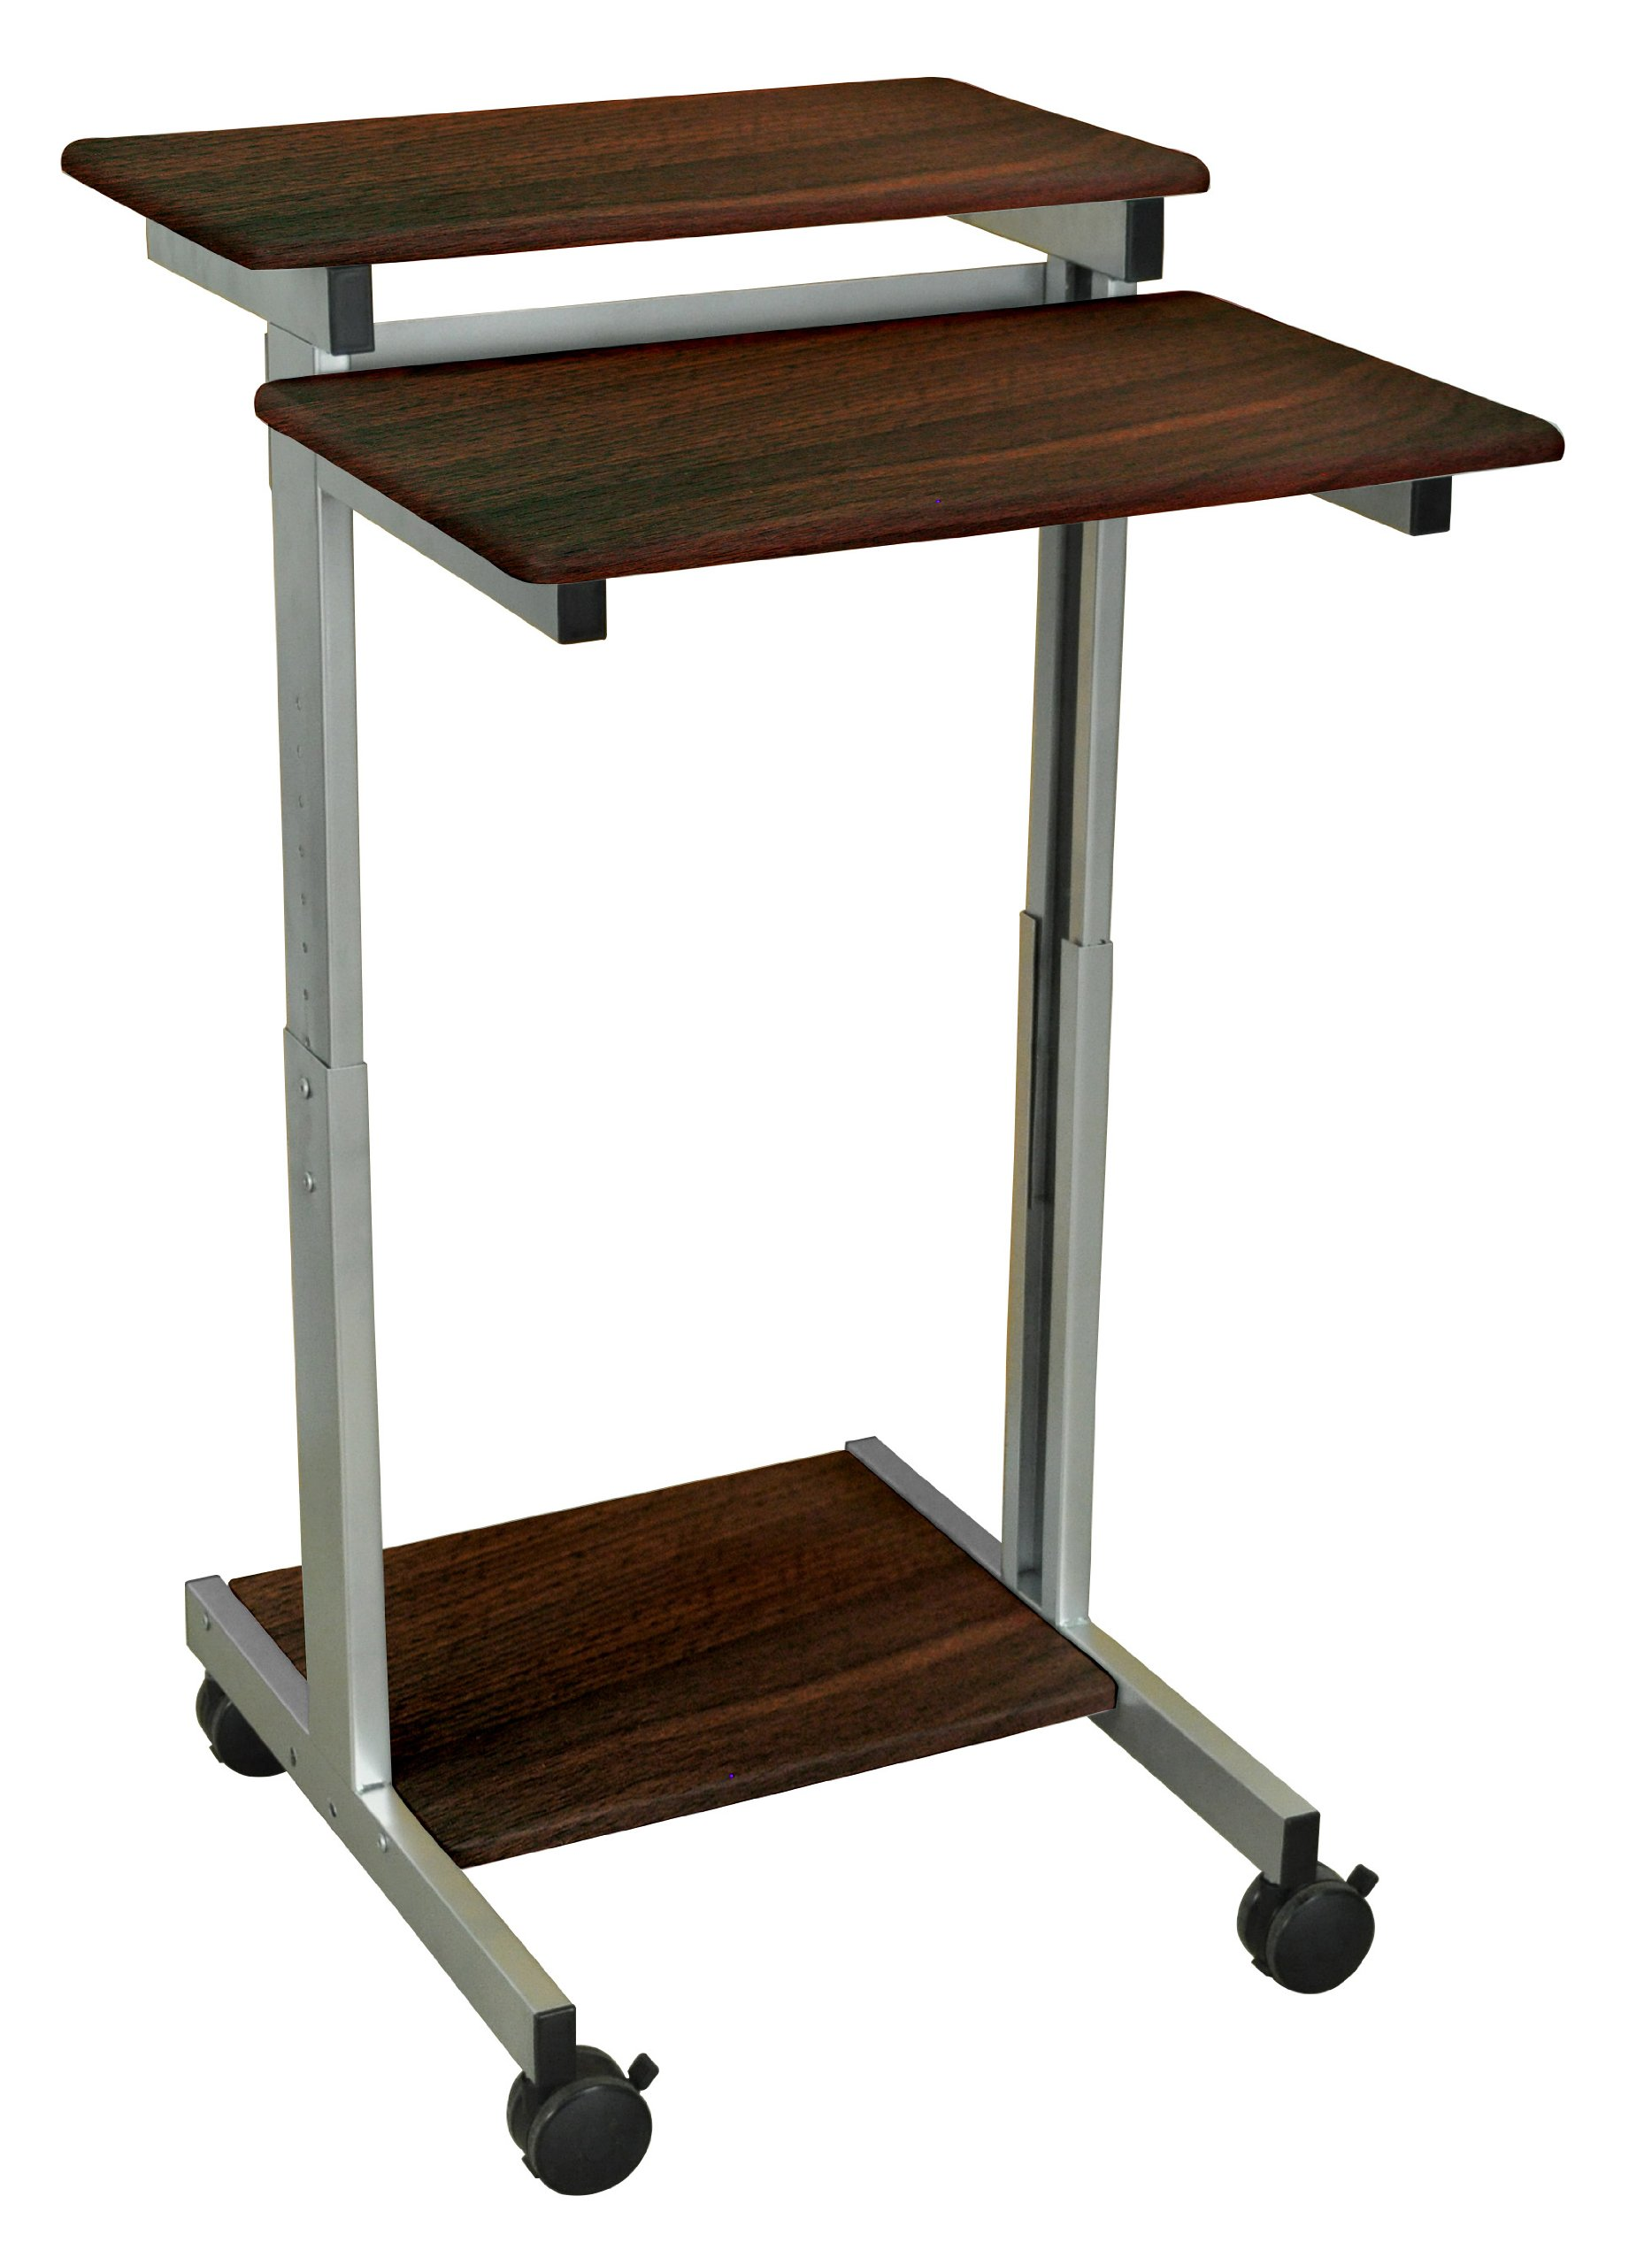 DMD Stand-Up Desk, Mobile Audio Visual (AV) Presentation and Workstation for Laptops, Tablets and Projectors or Data Entry, Walnut Finish